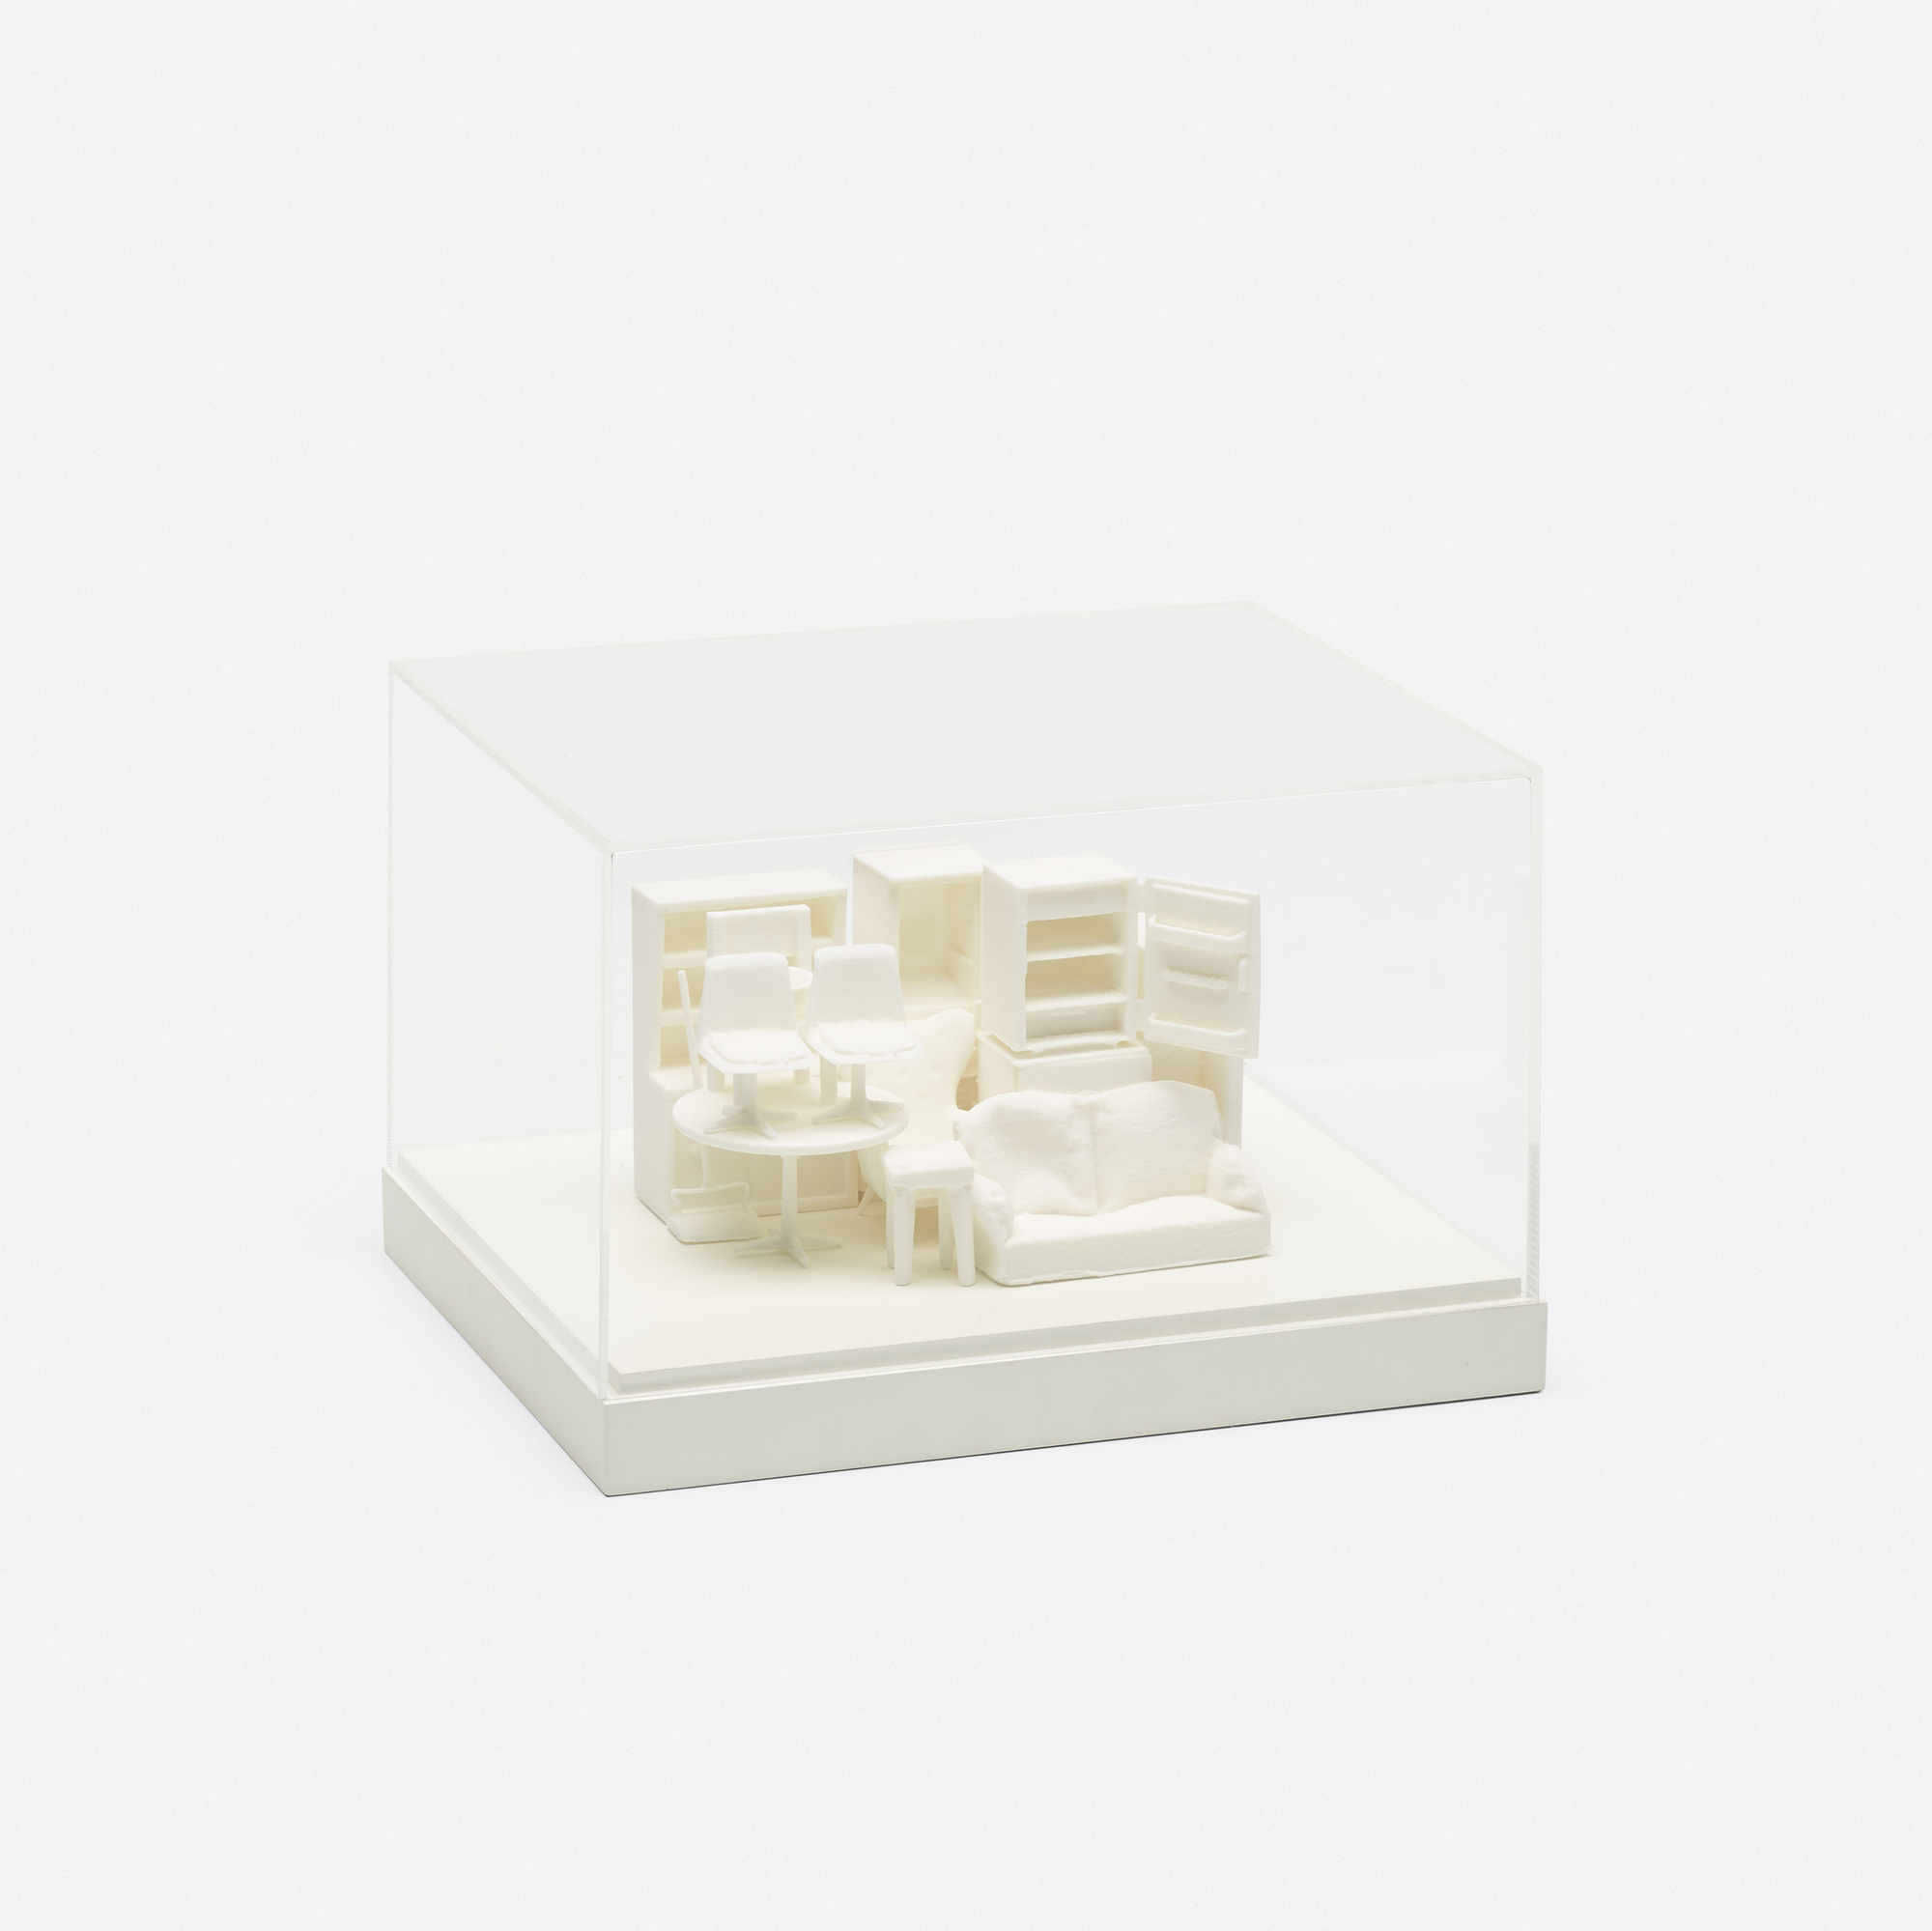 138: Rachel Whiteread / Secondhand (1 of 3)